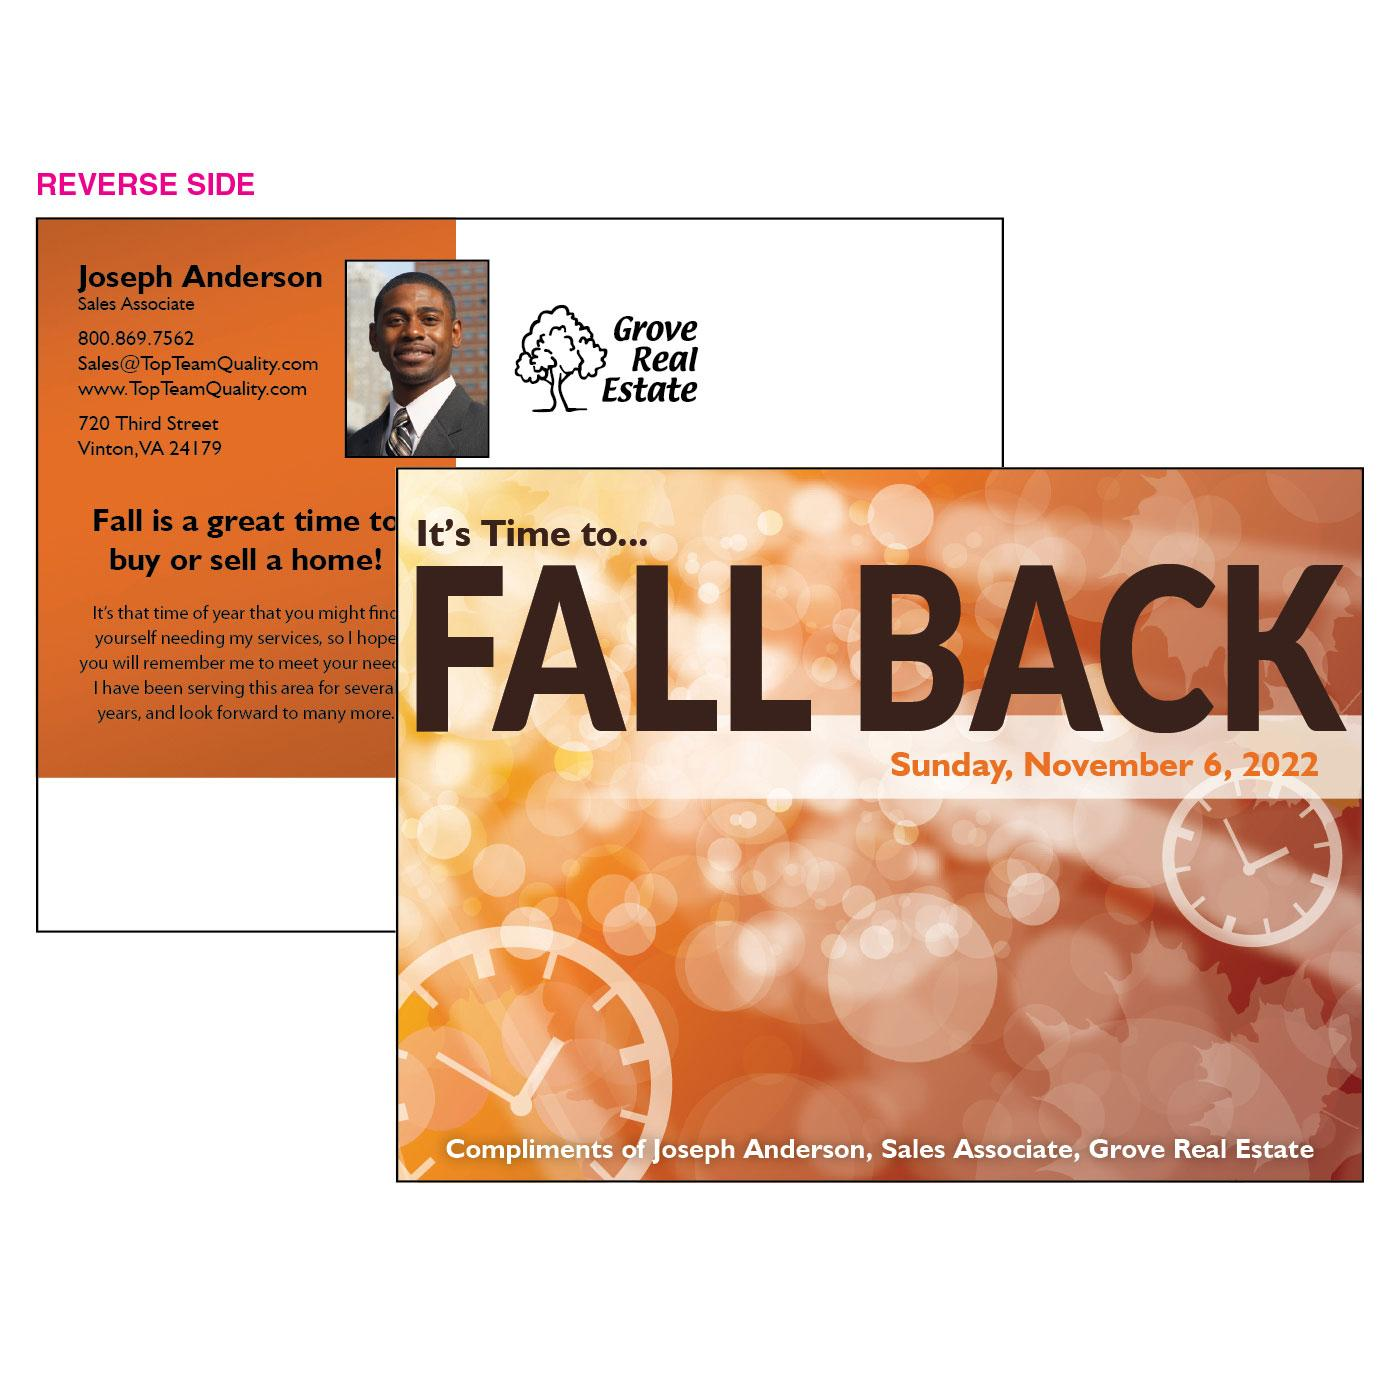 Fall Back Promotional Postcard